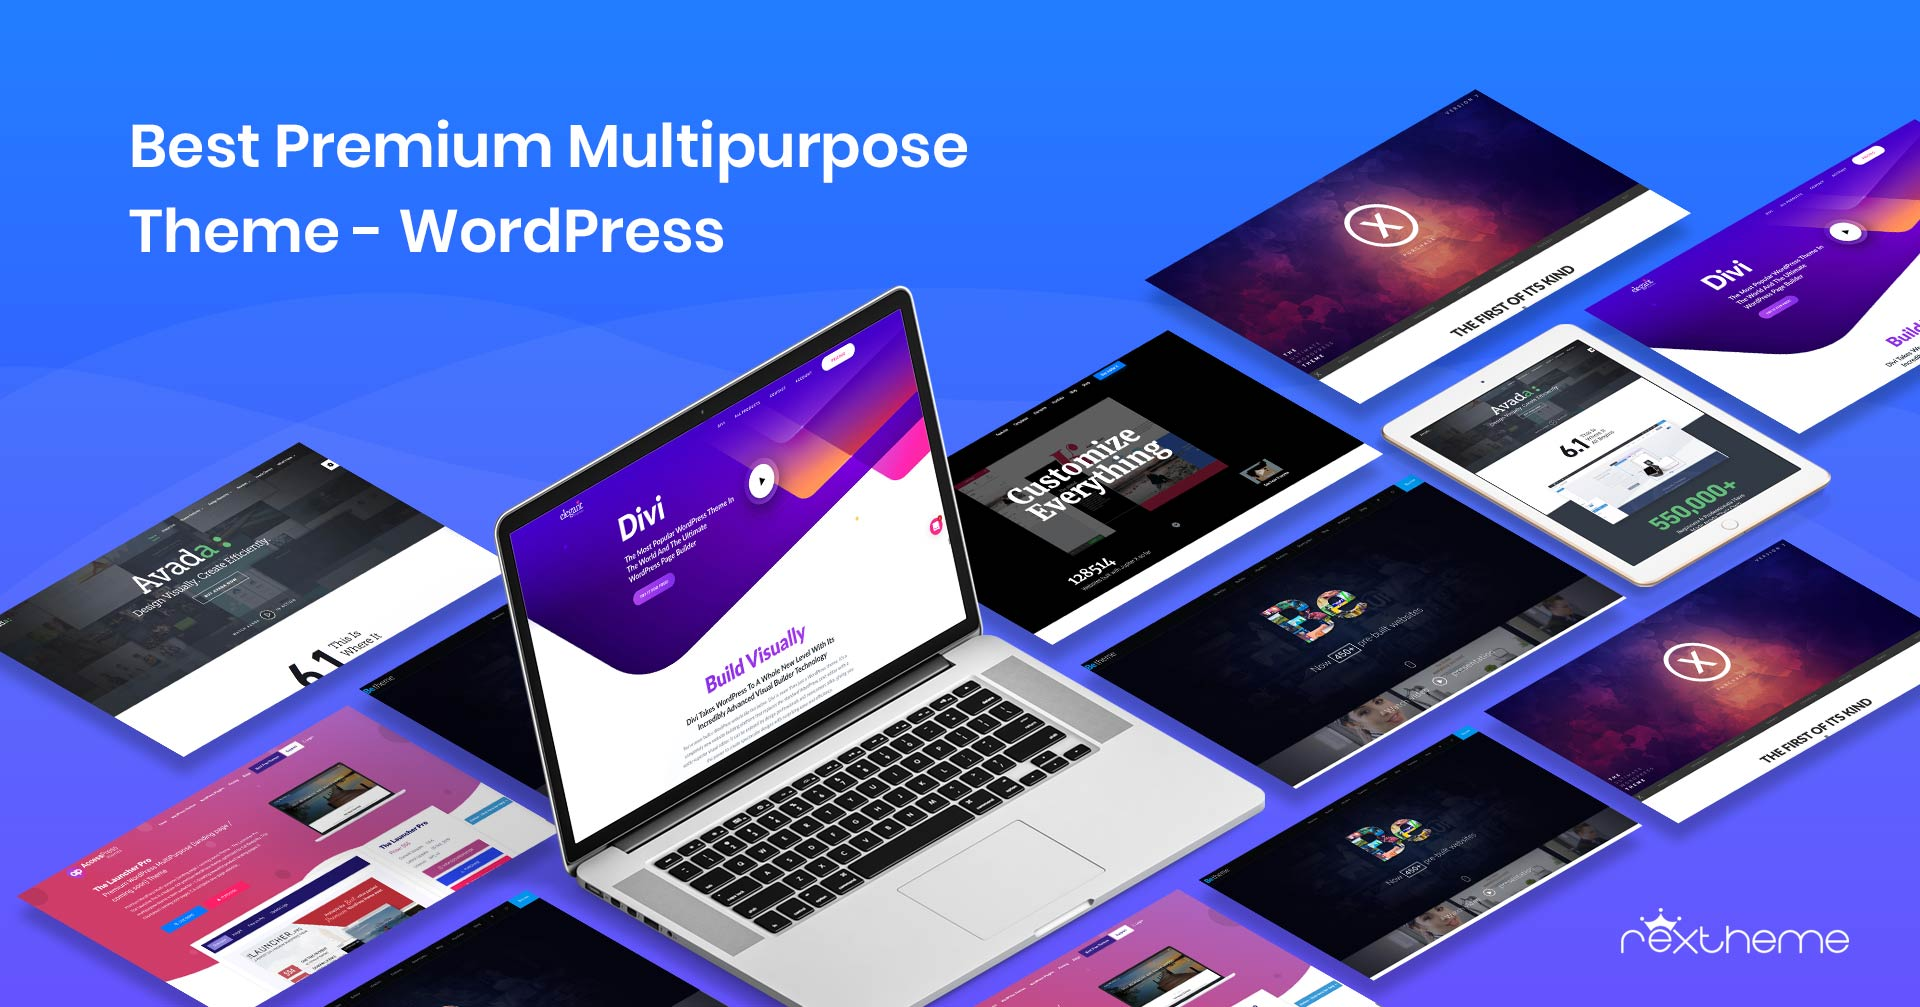 Best Premium Multipurpose themes - Featured Image